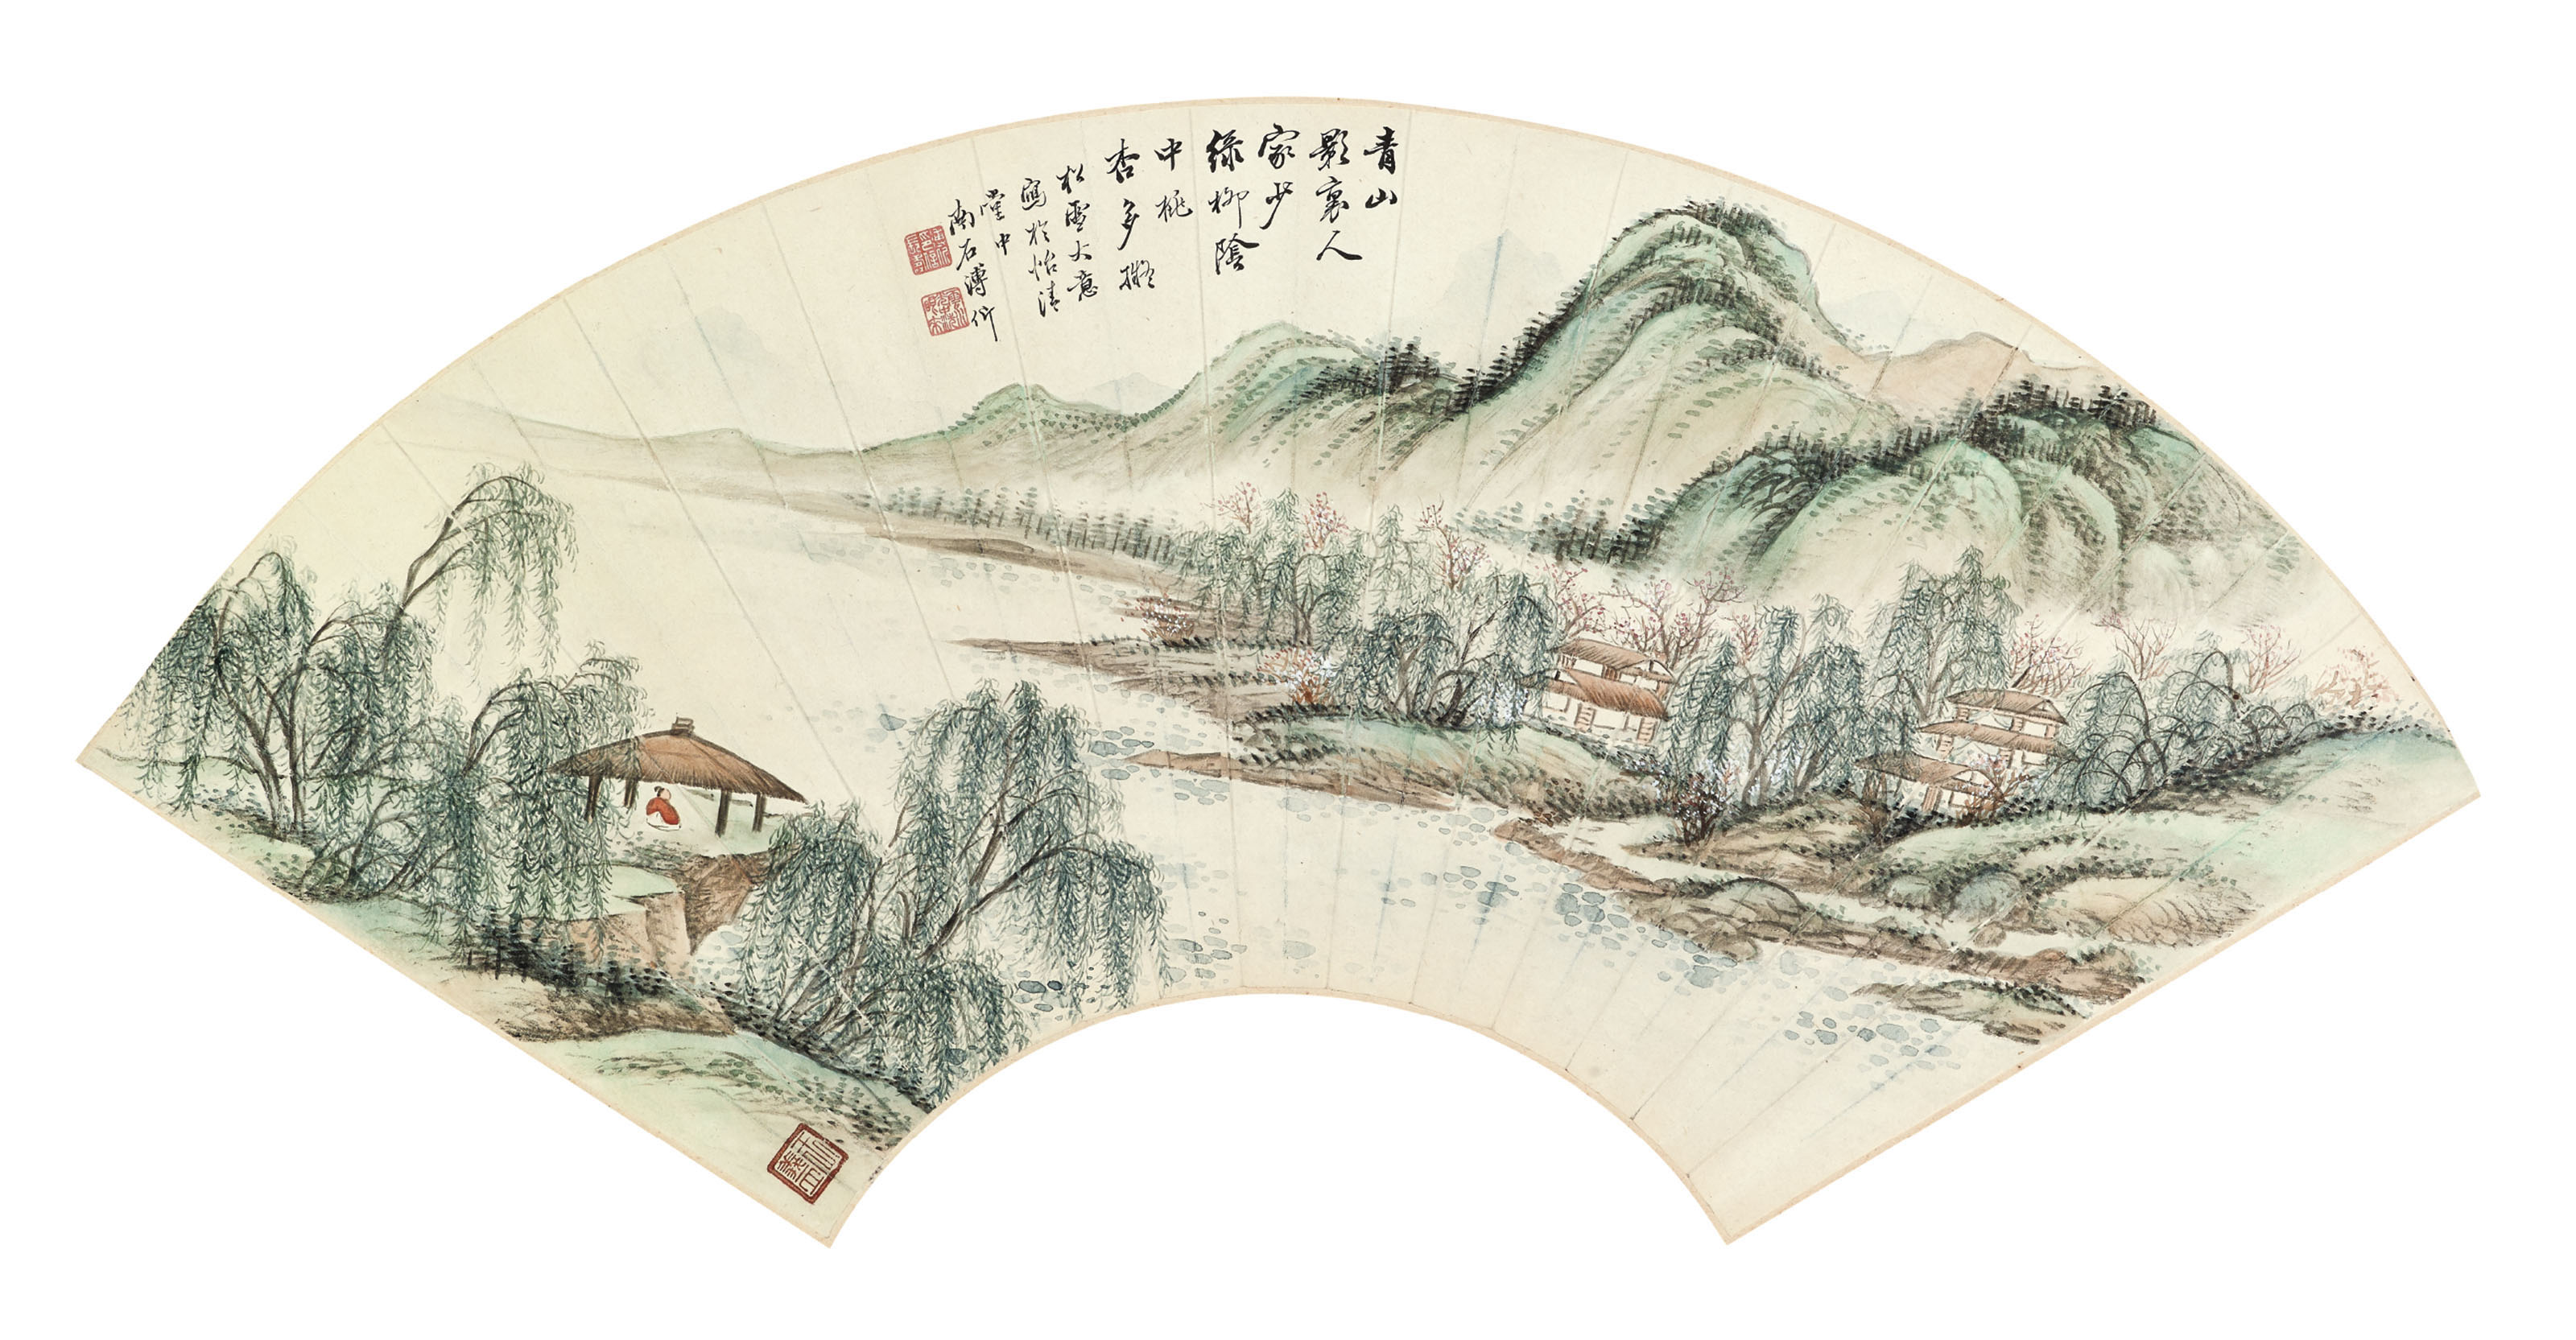 Landscape in the Style of Zhao Mengfu